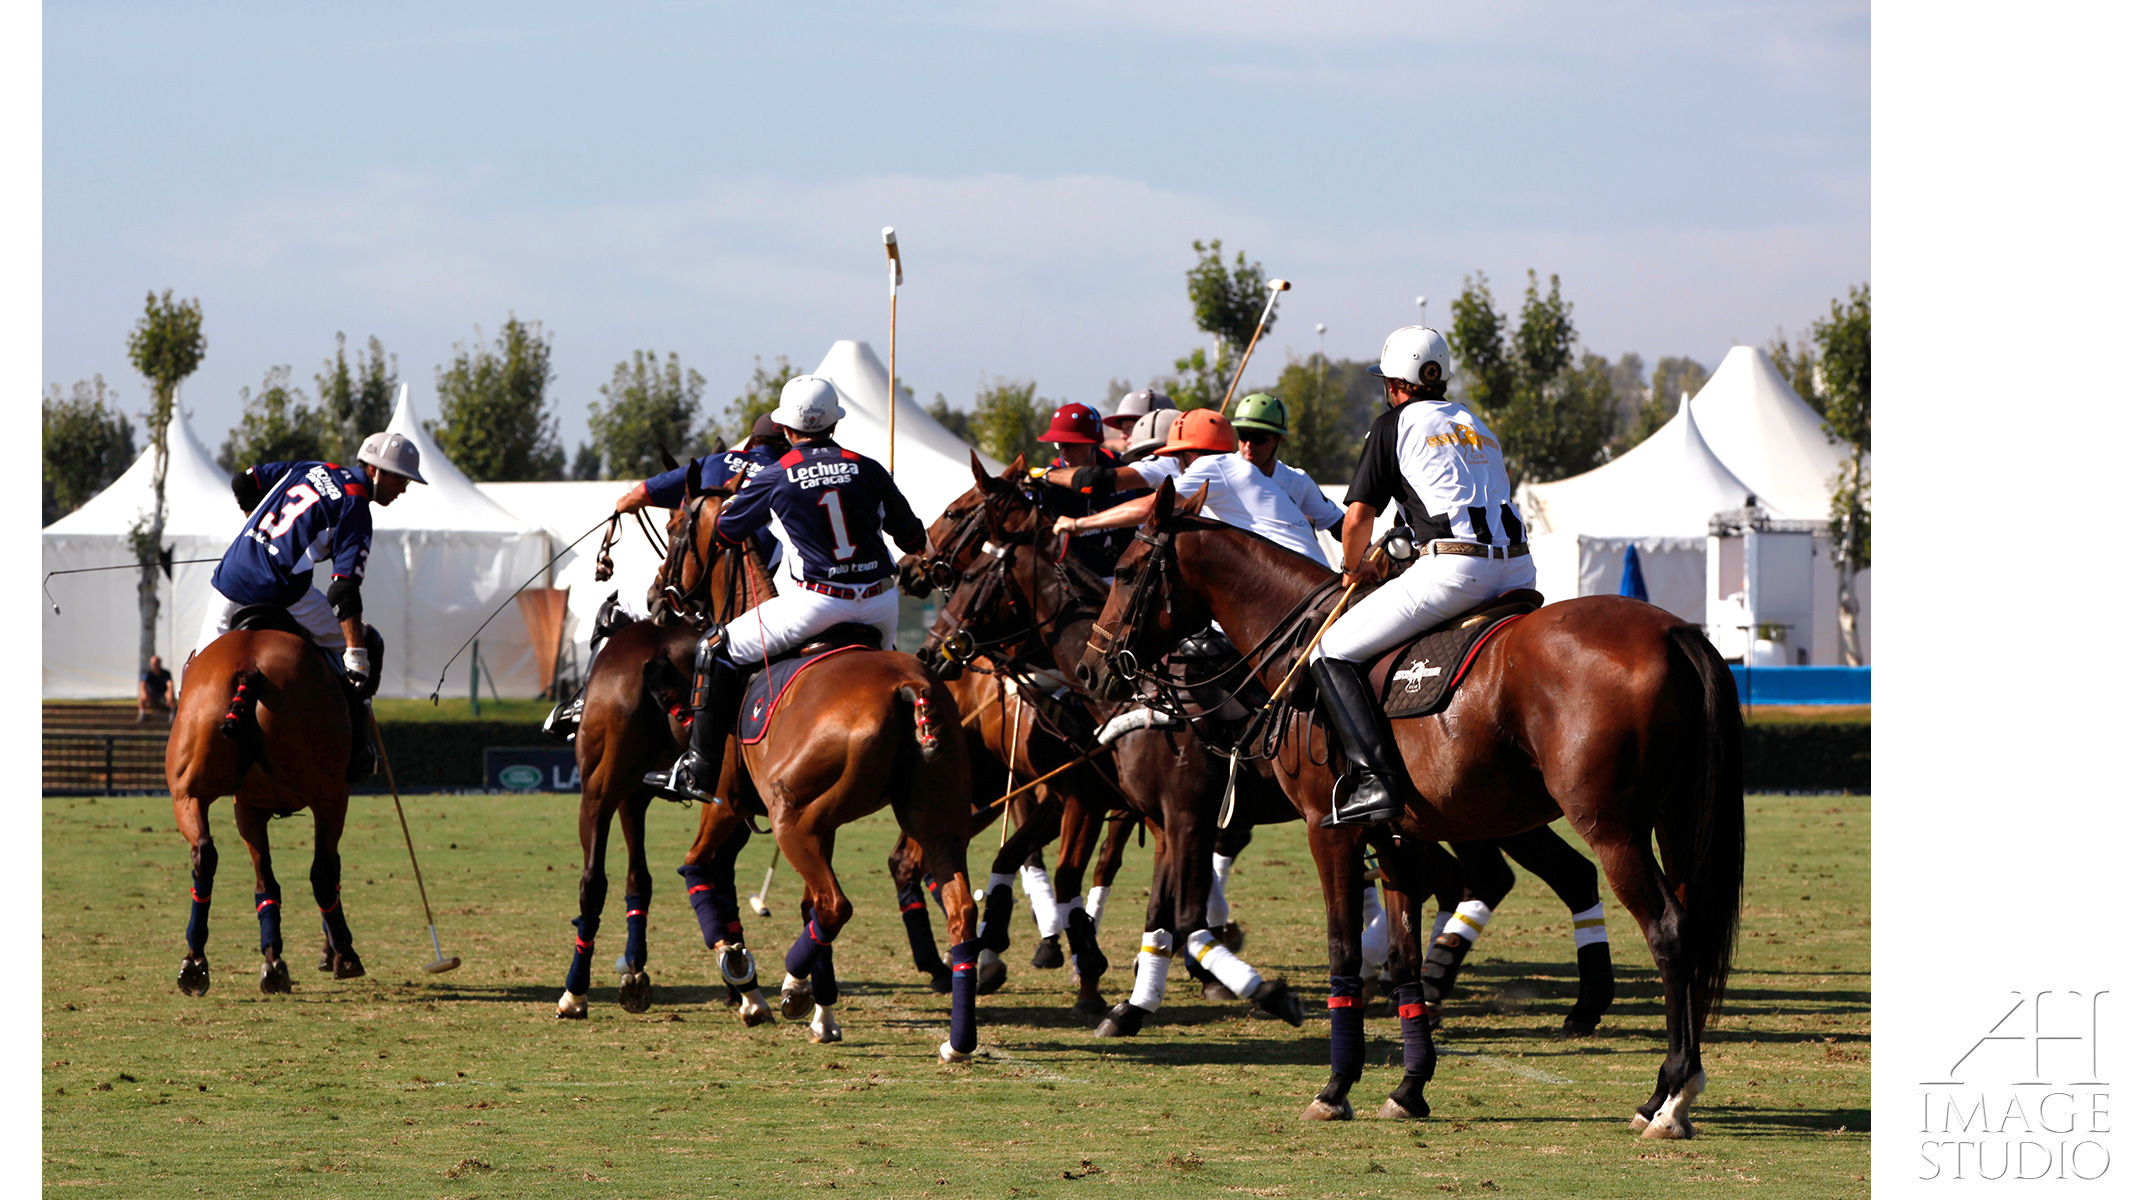 polo sport photography Spain UK London